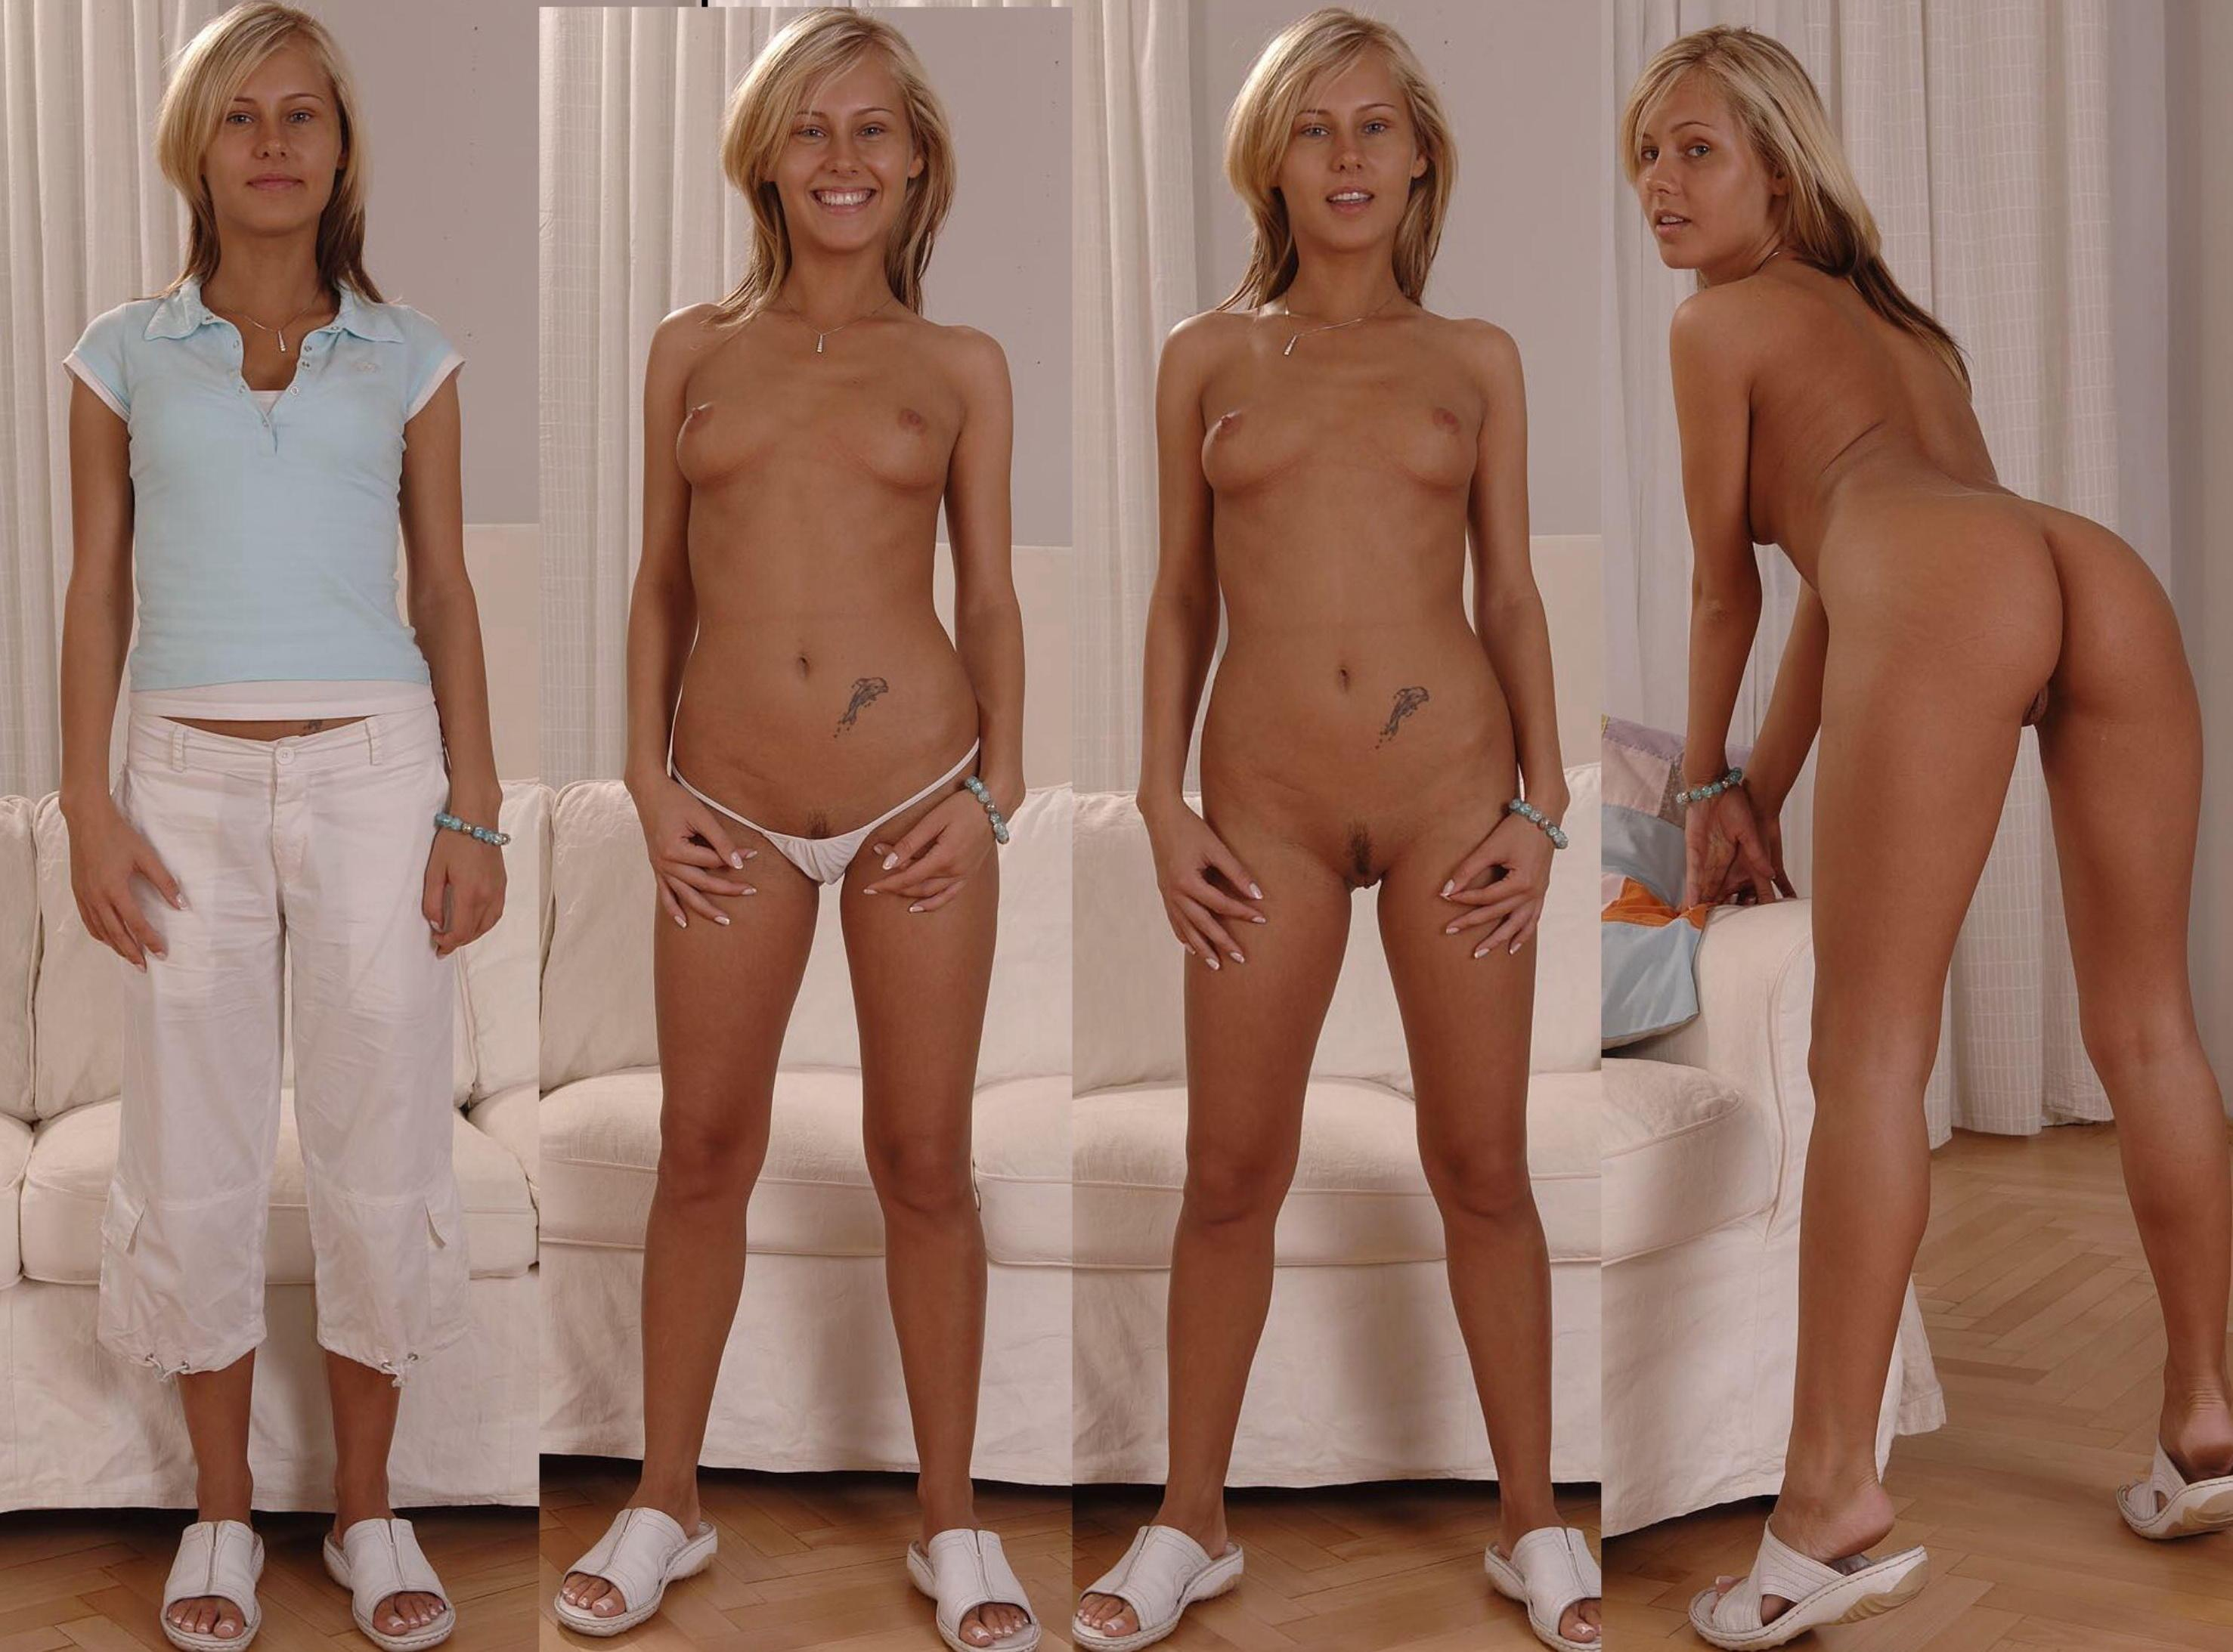 Clothed and naked pics